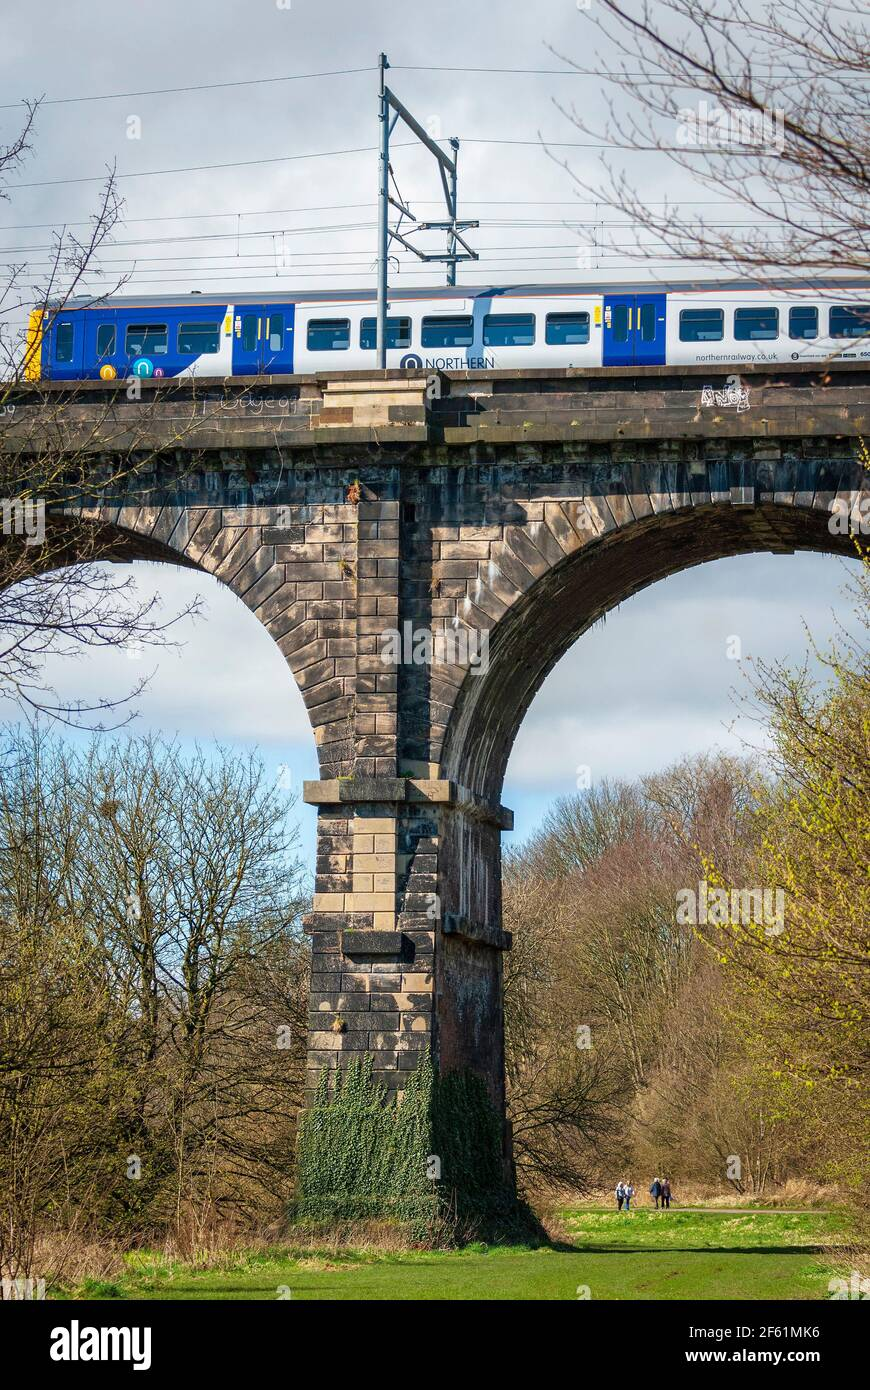 A Northern Rail train crossing the Sankey viaduct at Earlestown over the Sankey Valley. Stock Photo